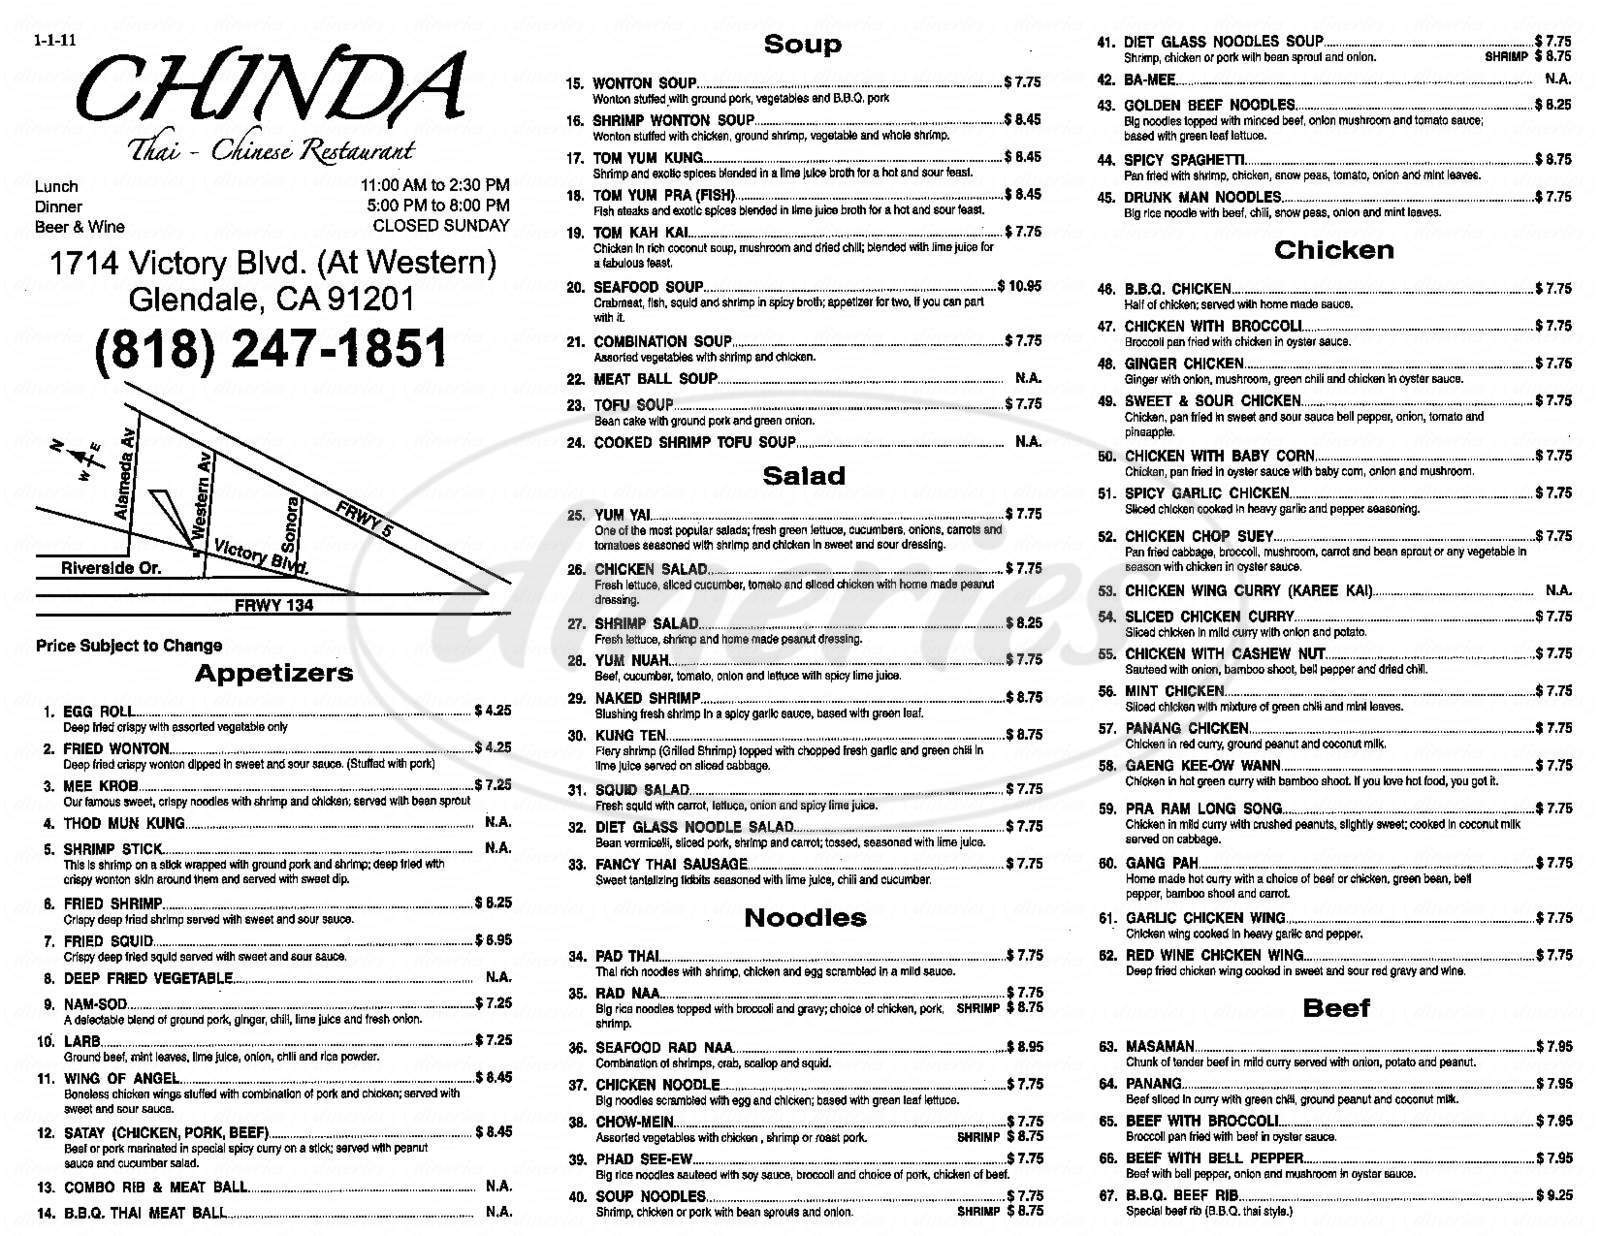 menu for Chinda